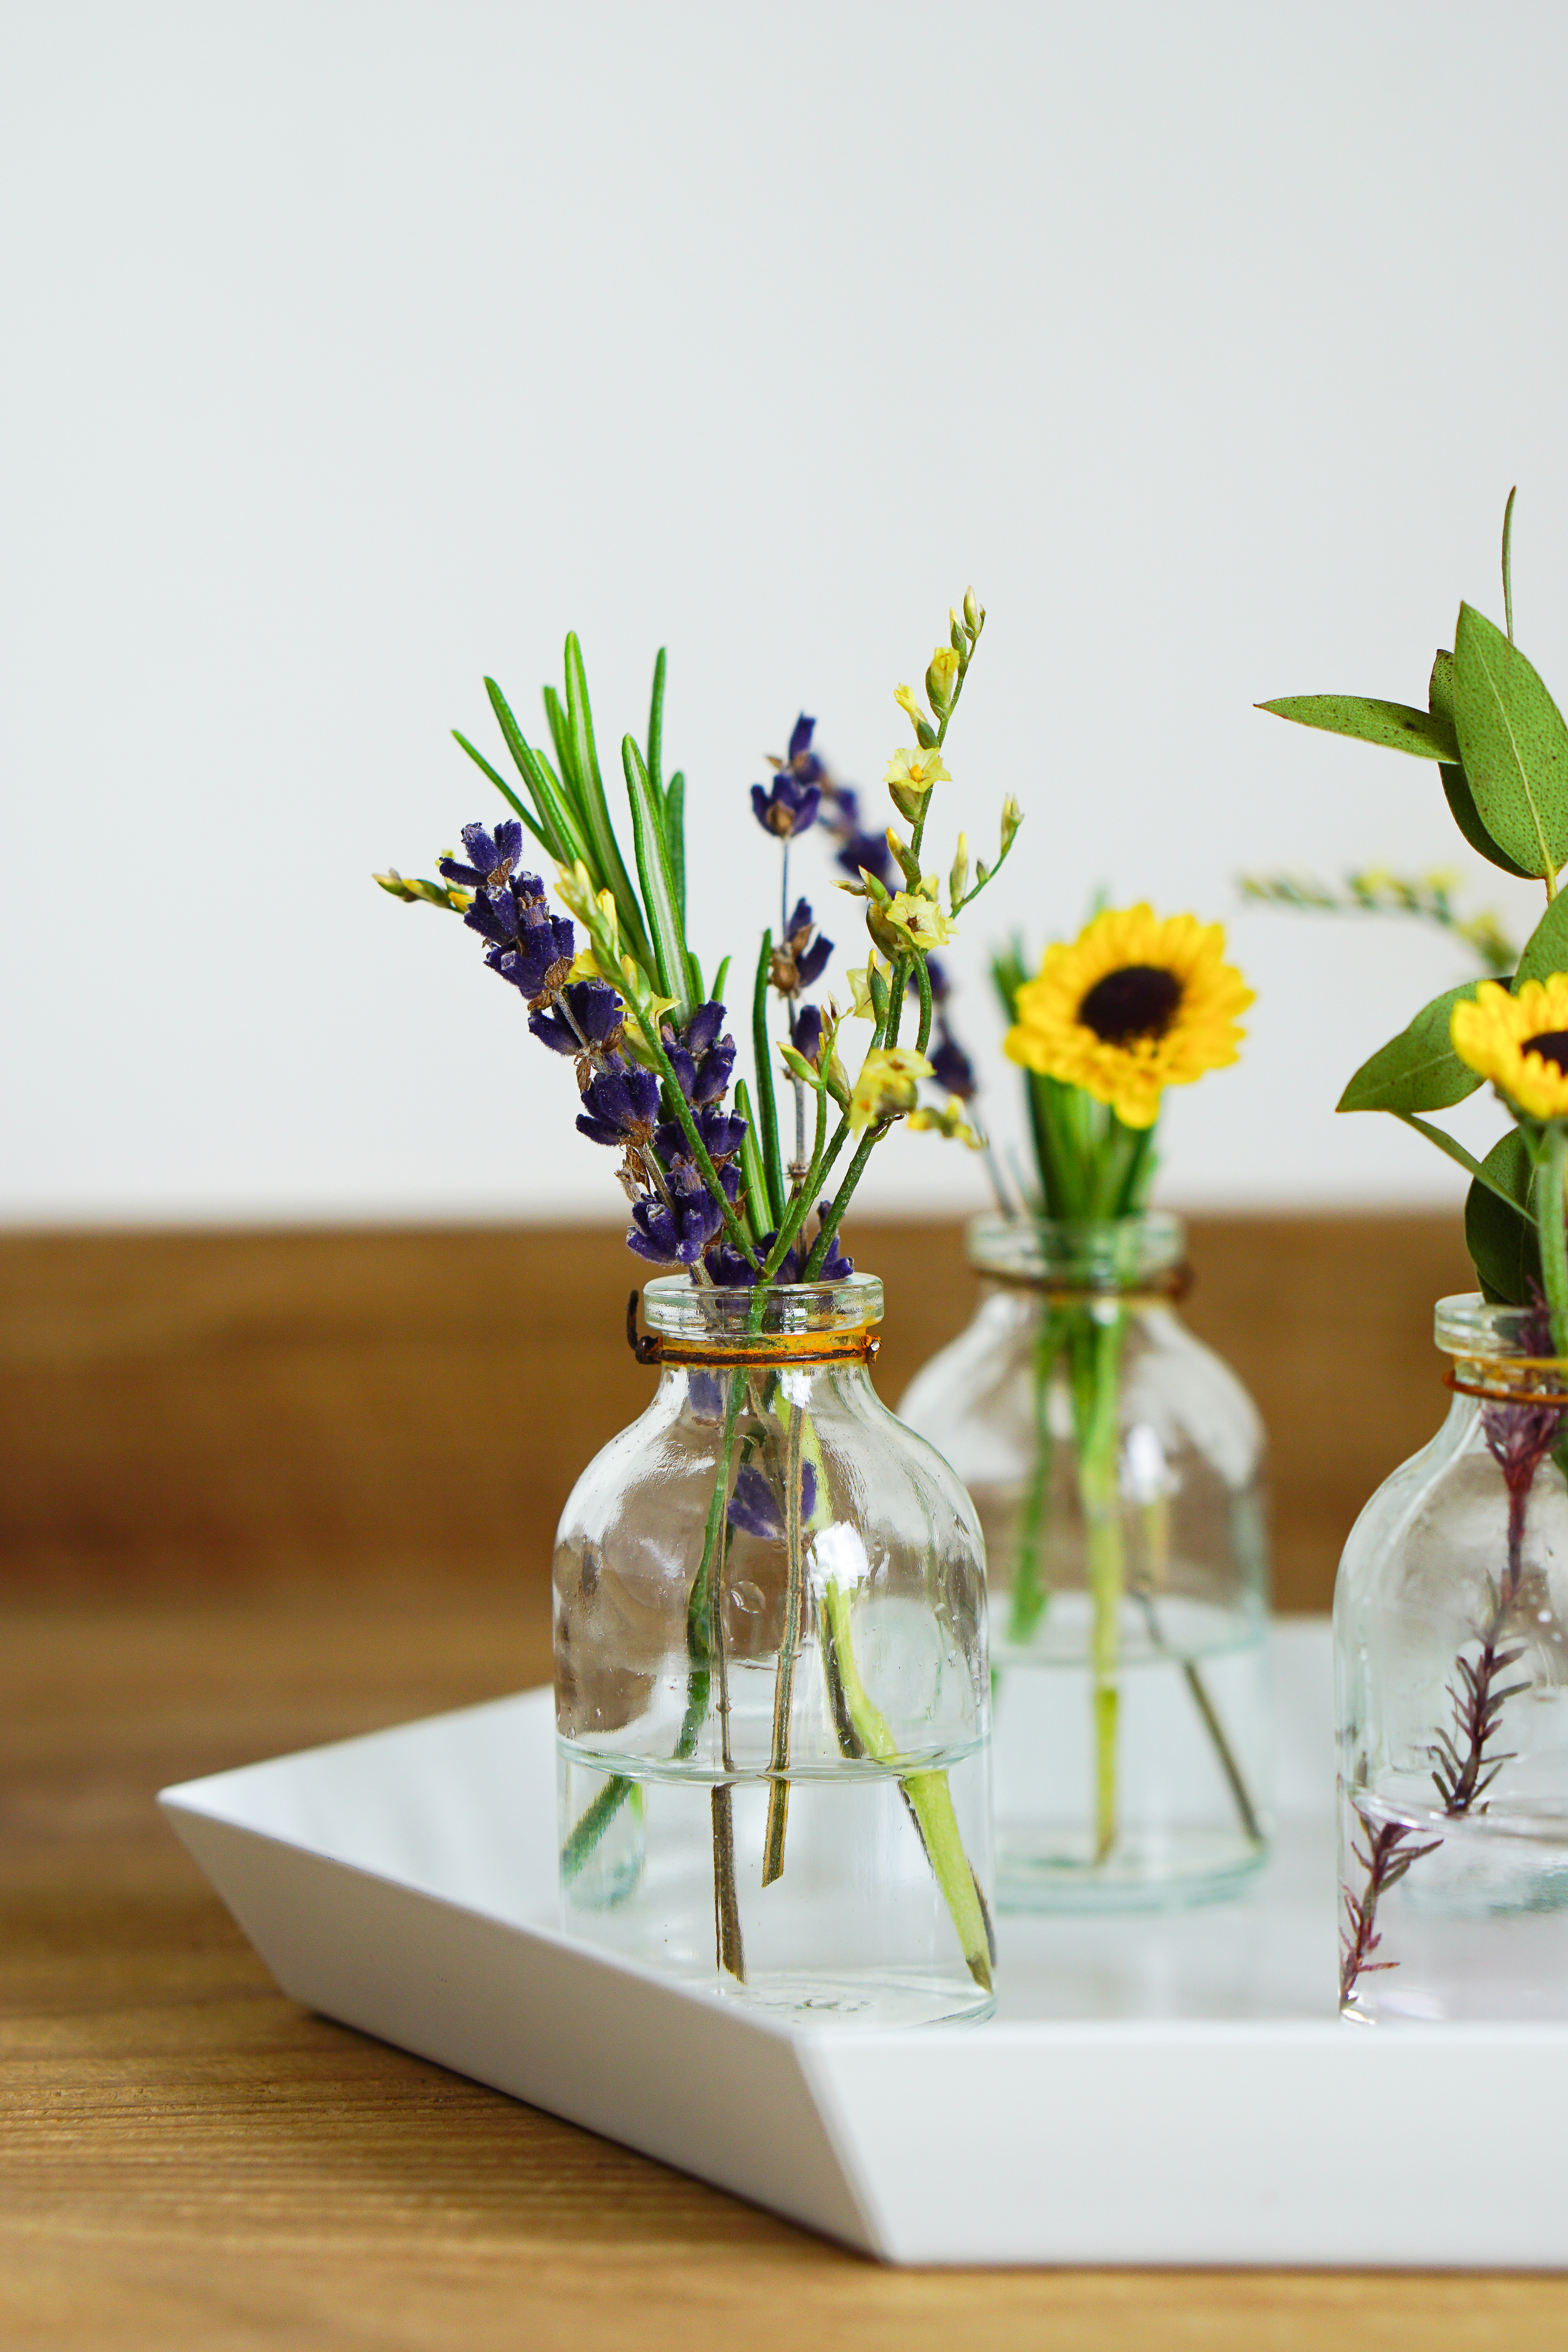 Playing with posies ... a photography interlude